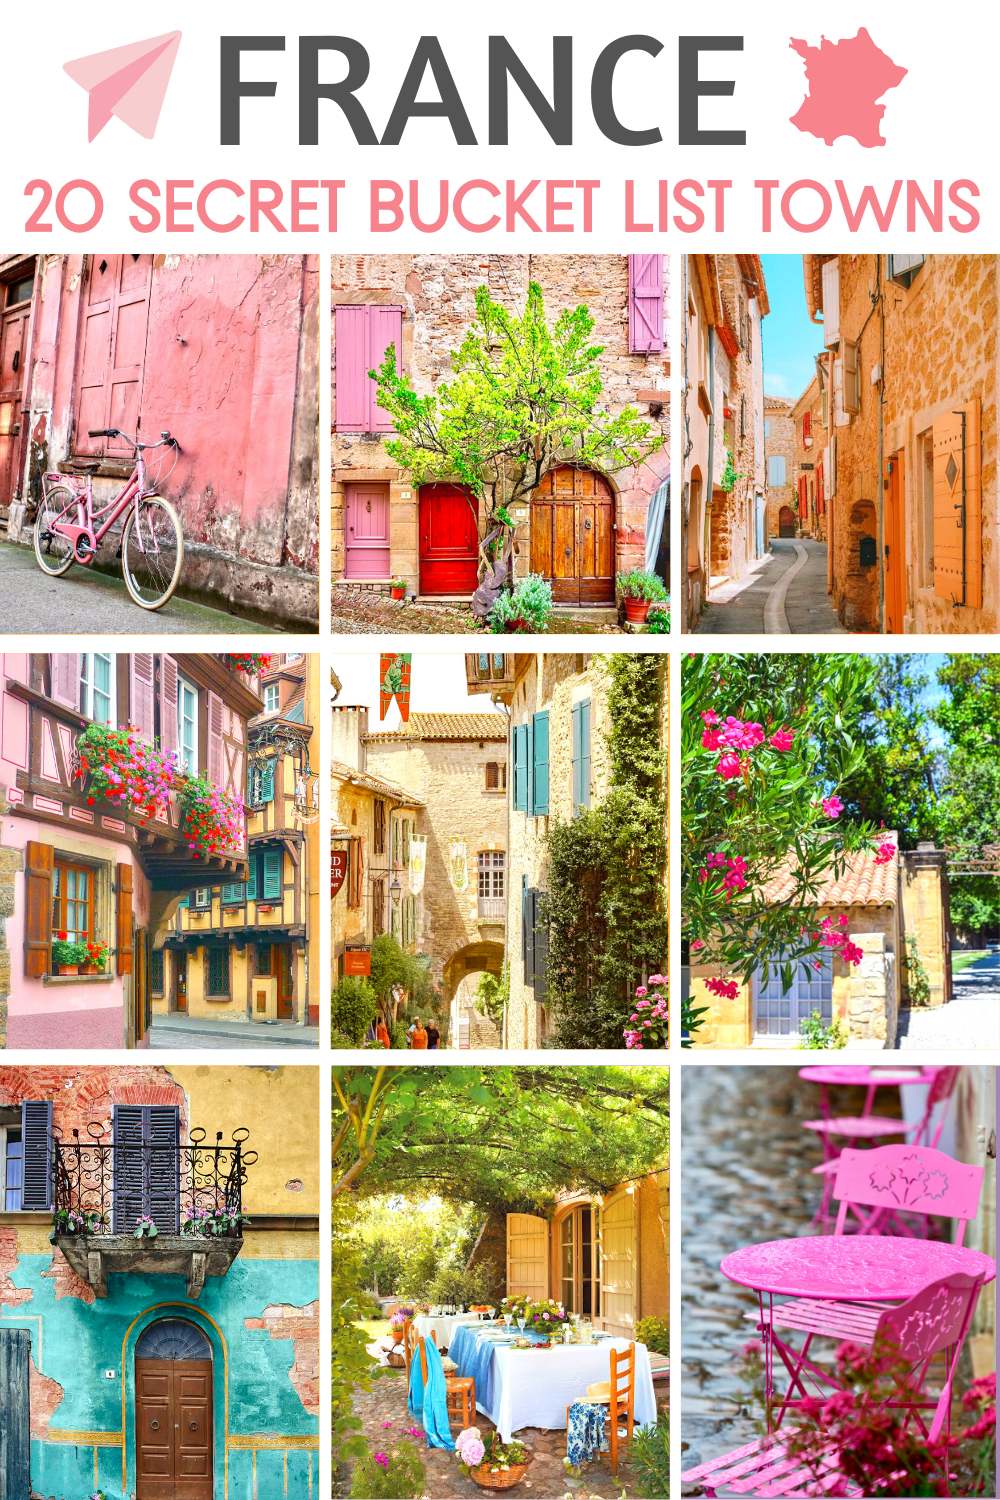 Off the Beaten Track Towns and Hidden Gems in France